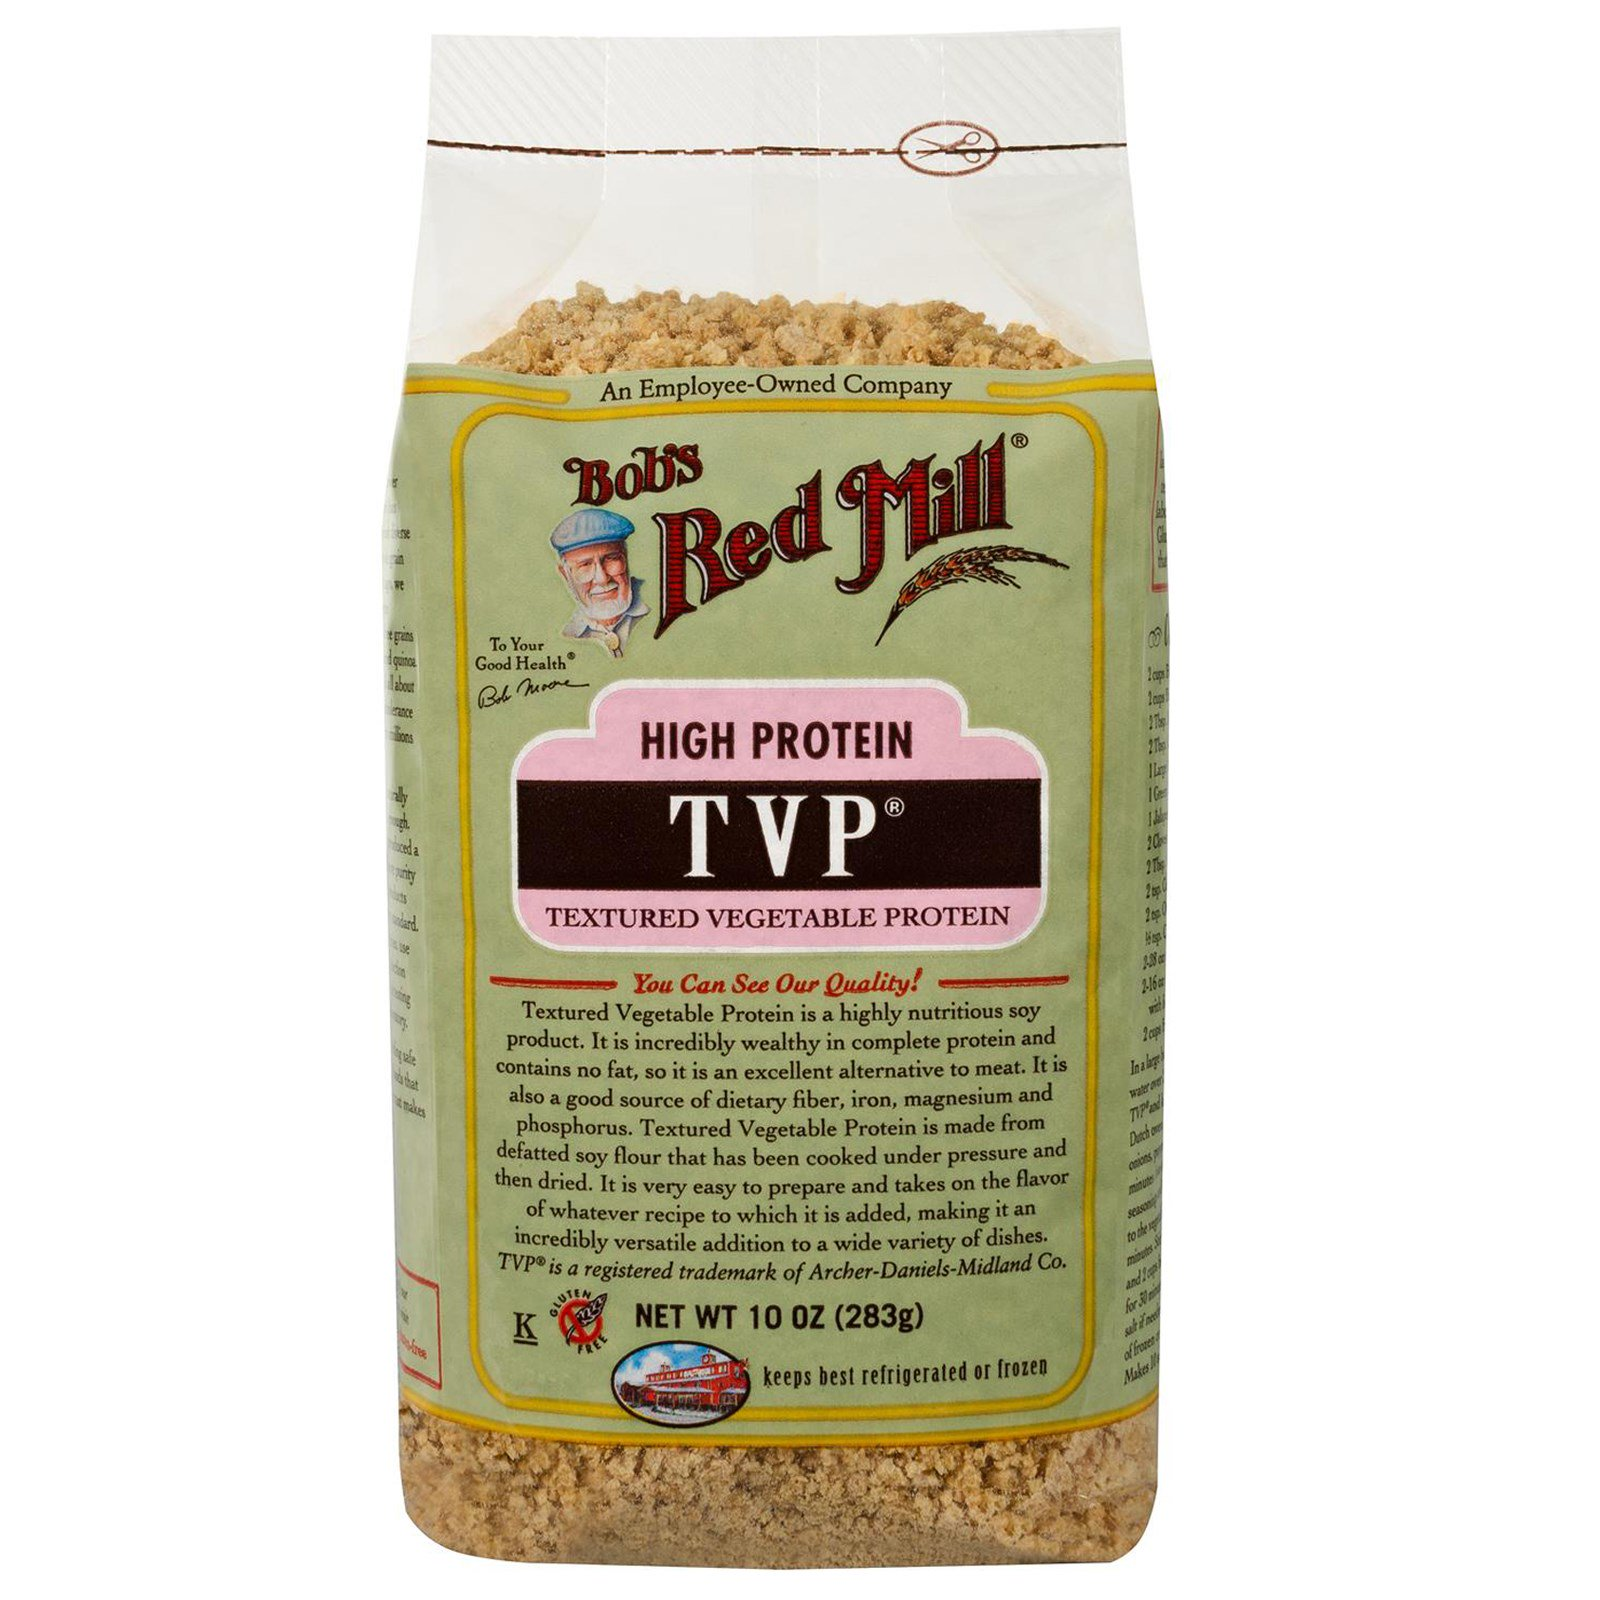 30 Liter Emmer Bob S Red Mill Tvp Textured Vegetable Protein 10 Oz 283 G